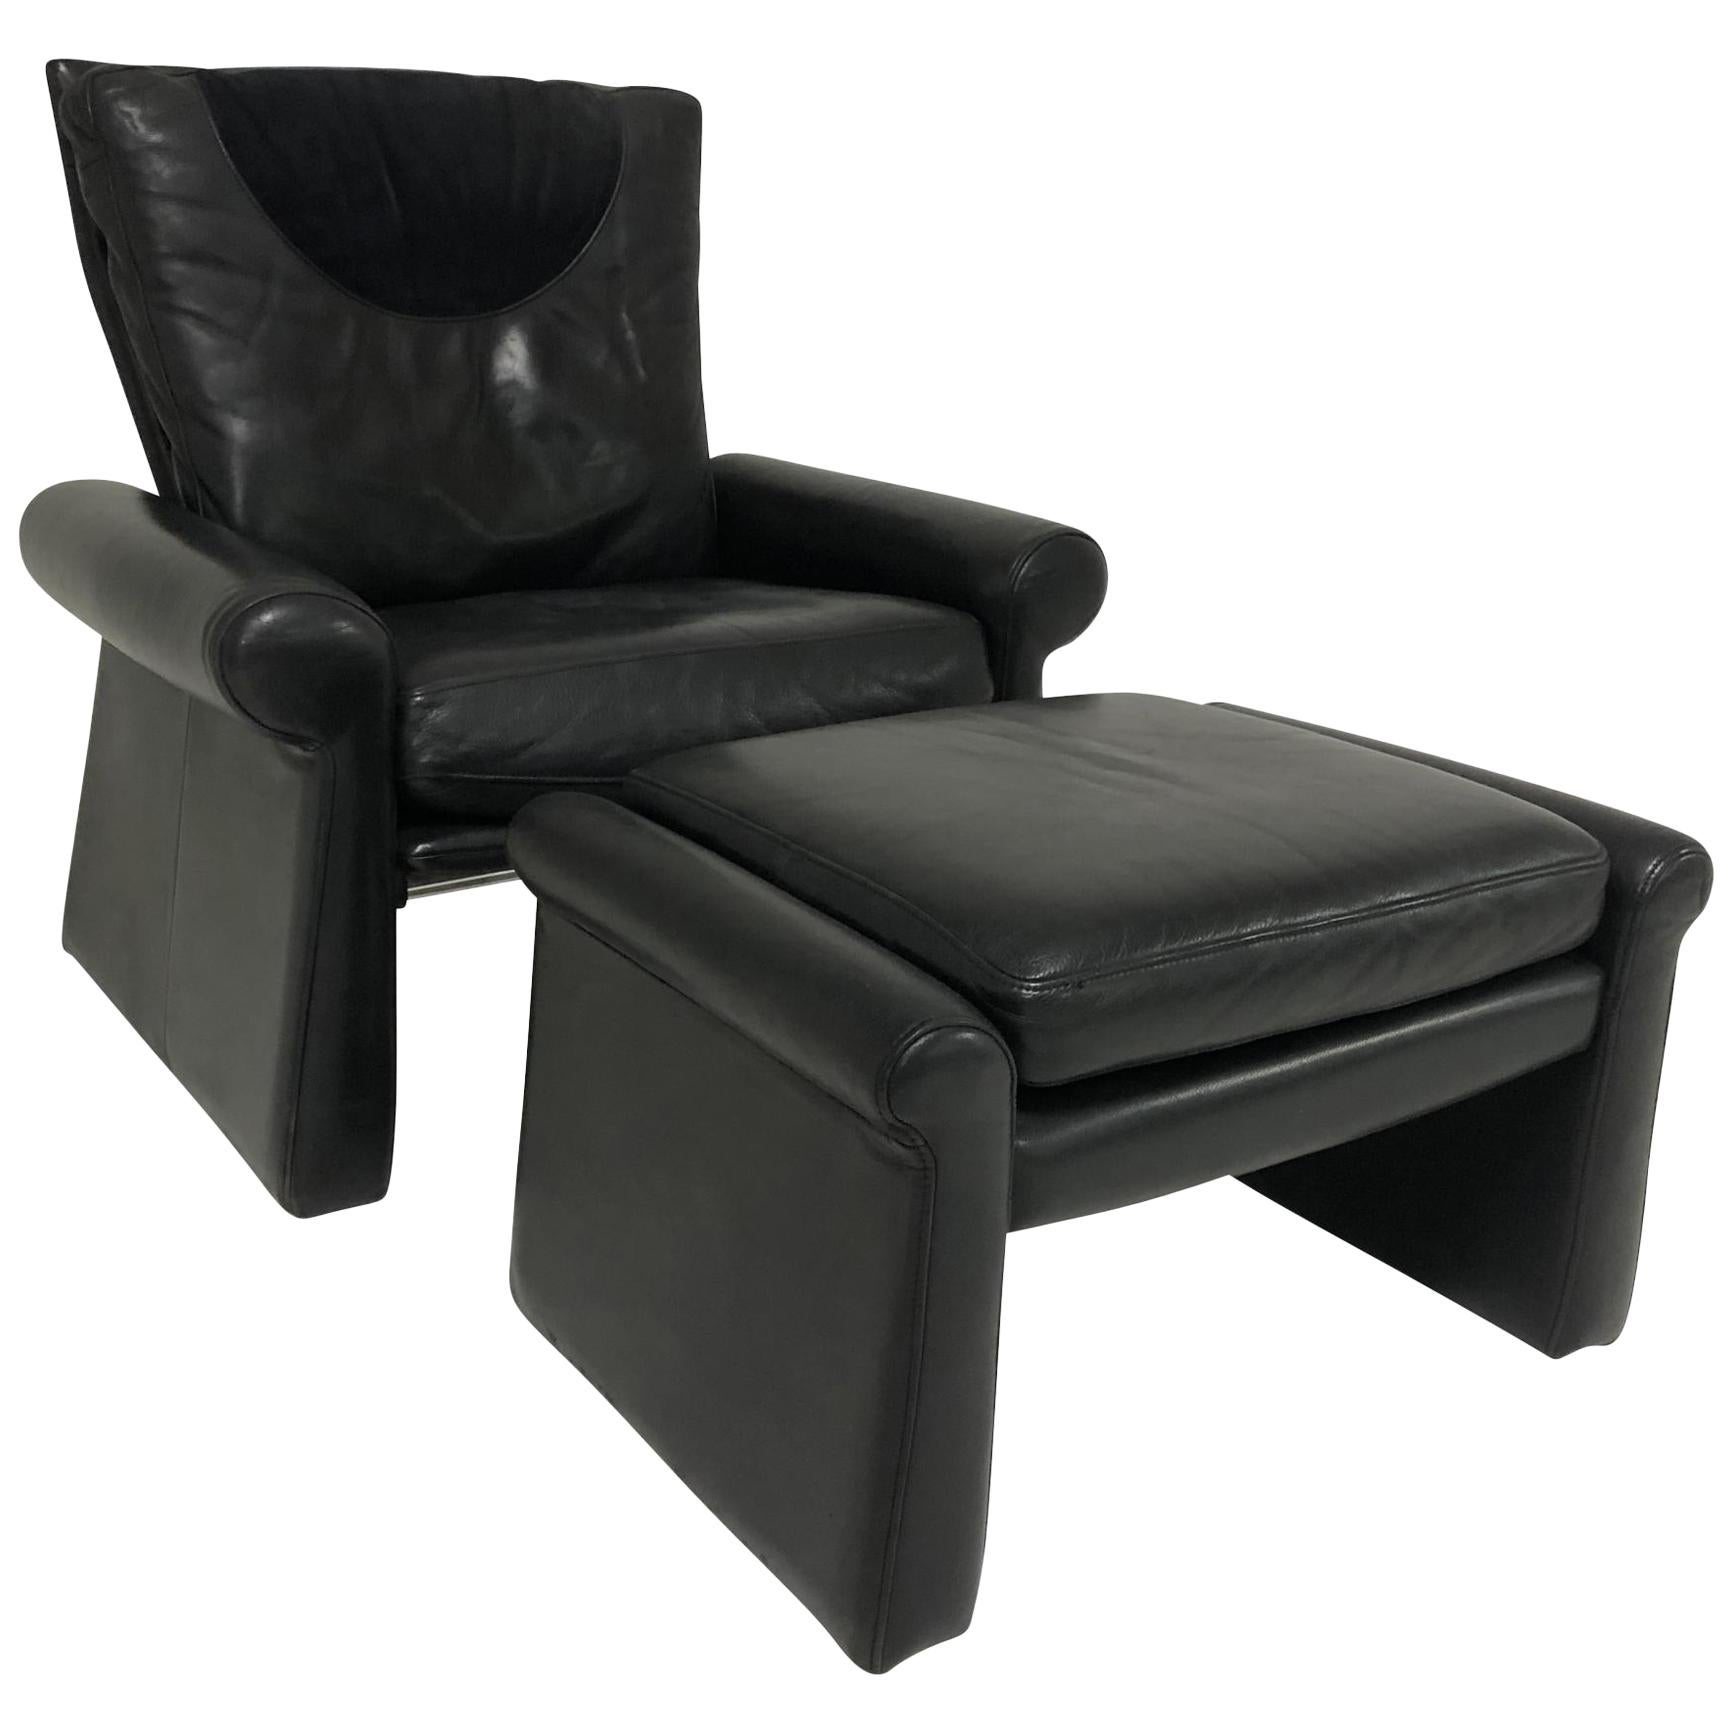 Guido Faleschini Black Leather a Lounge Chair and Ottoman, Italy 1970 Pace